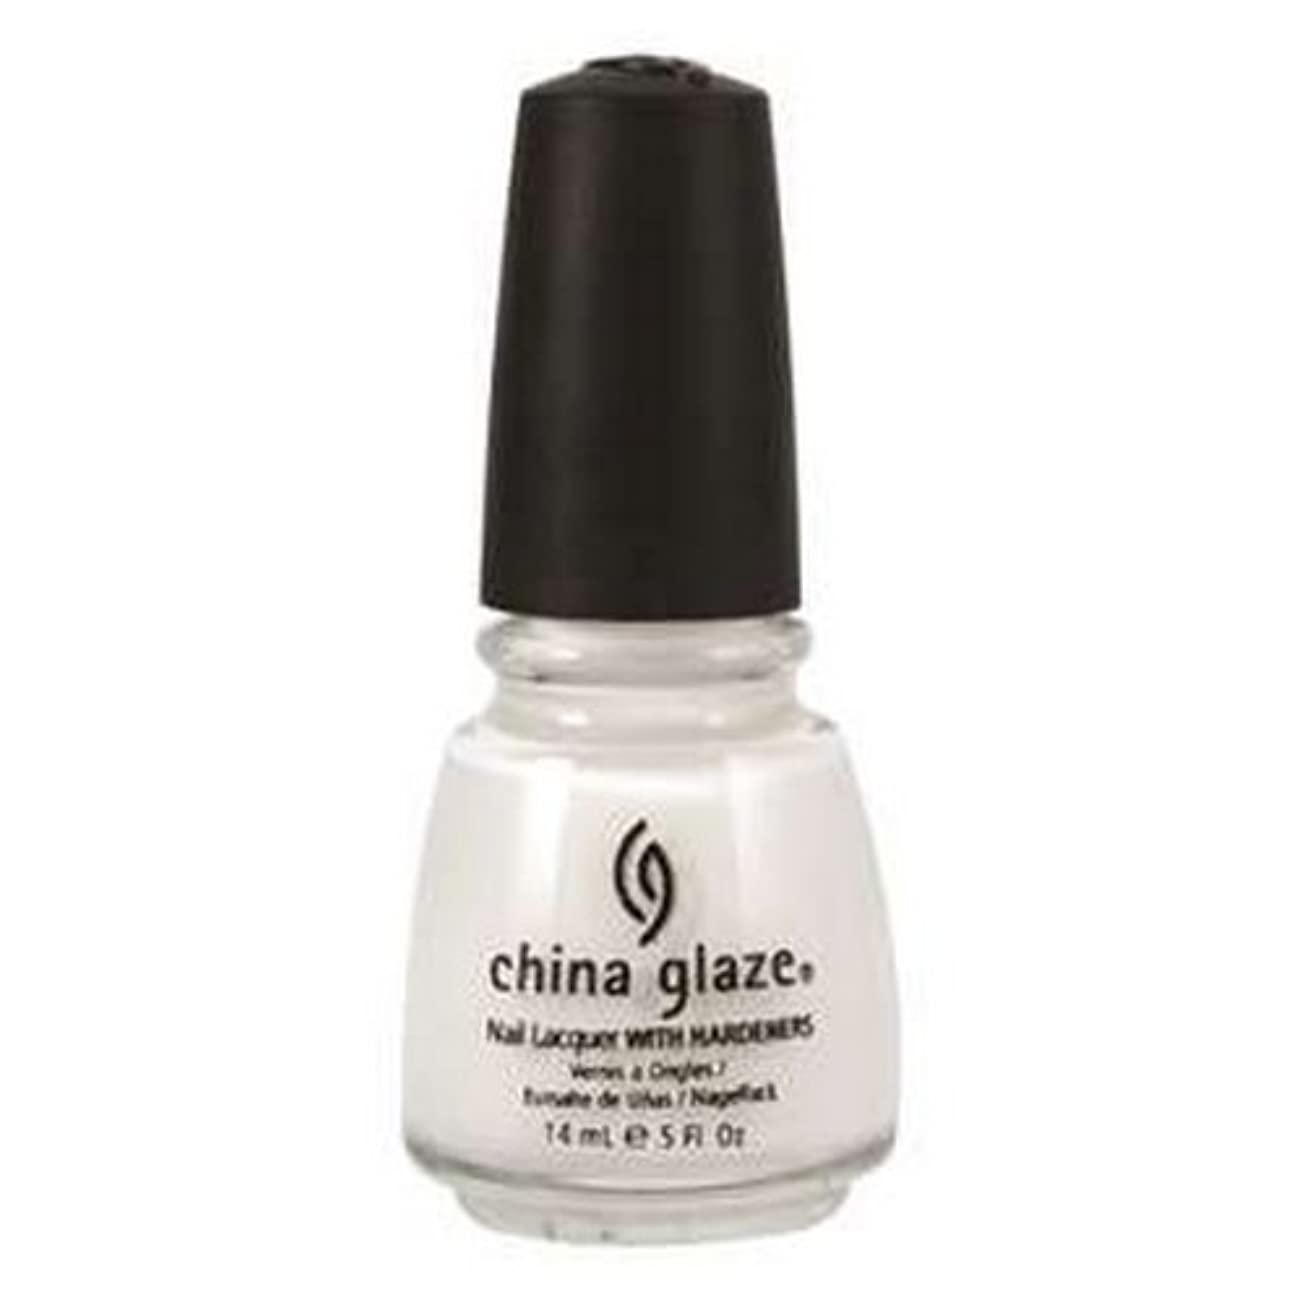 恐怖症うるさいスラッシュ(3 Pack) CHINA GLAZE Nail Lacquer with Nail Hardner 2 - Snow (並行輸入品)